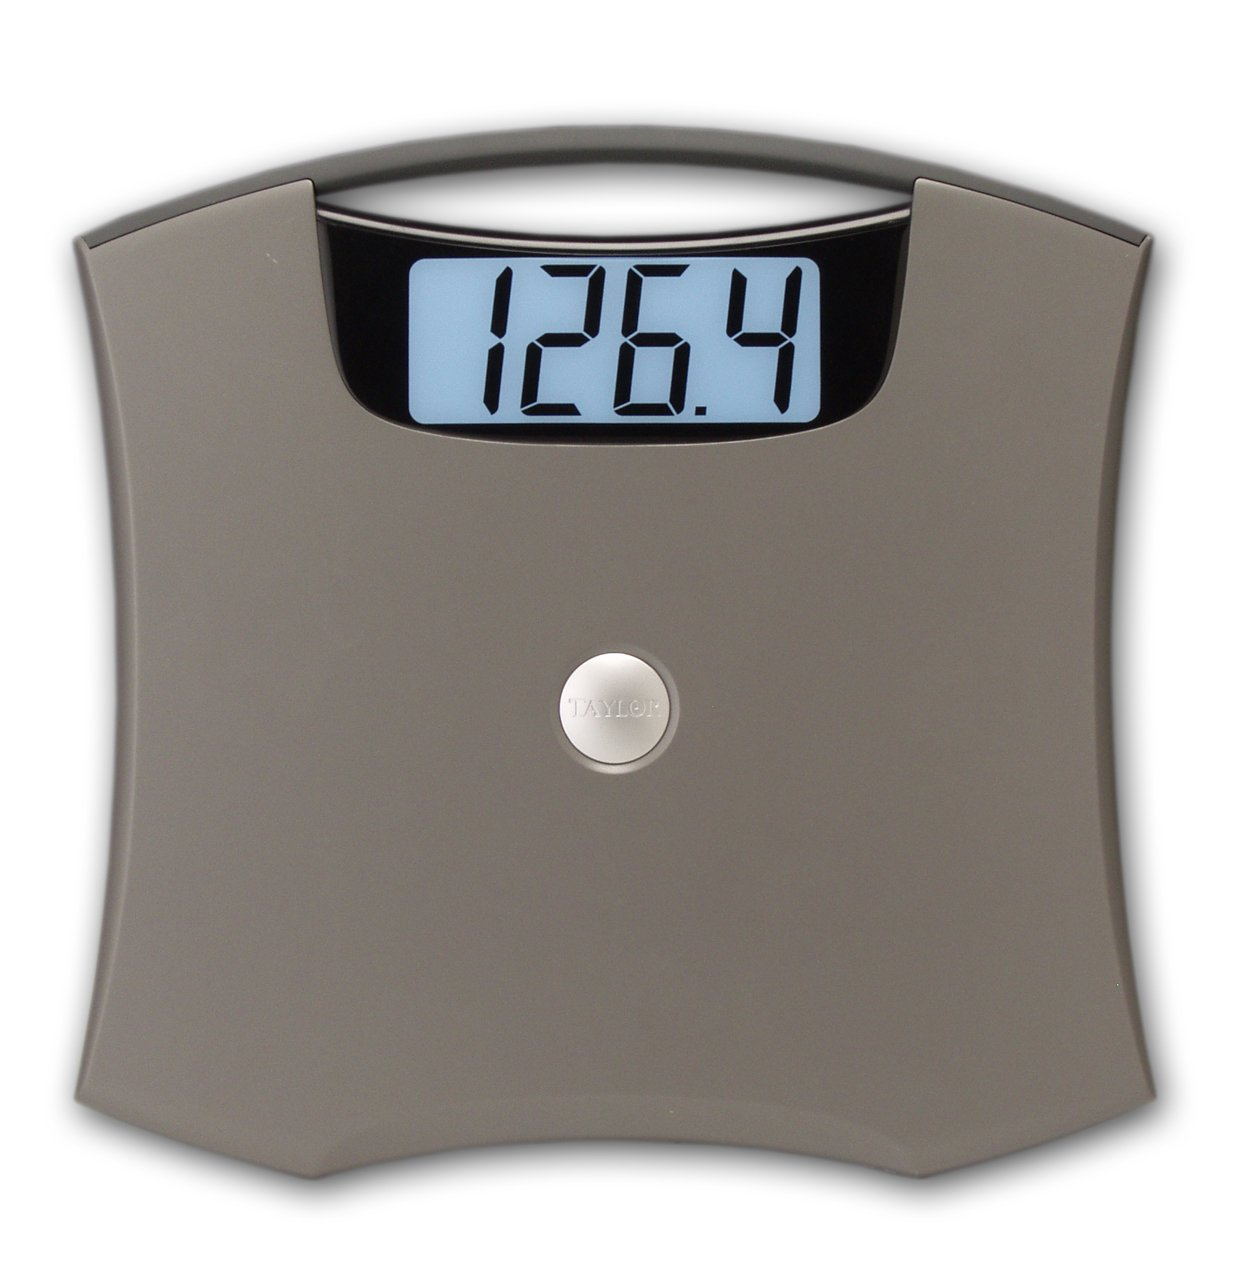 Amazon.com: Taylor Precision Products 7405 440 Pound Capacity Electronic  Scale: Health U0026 Personal Care